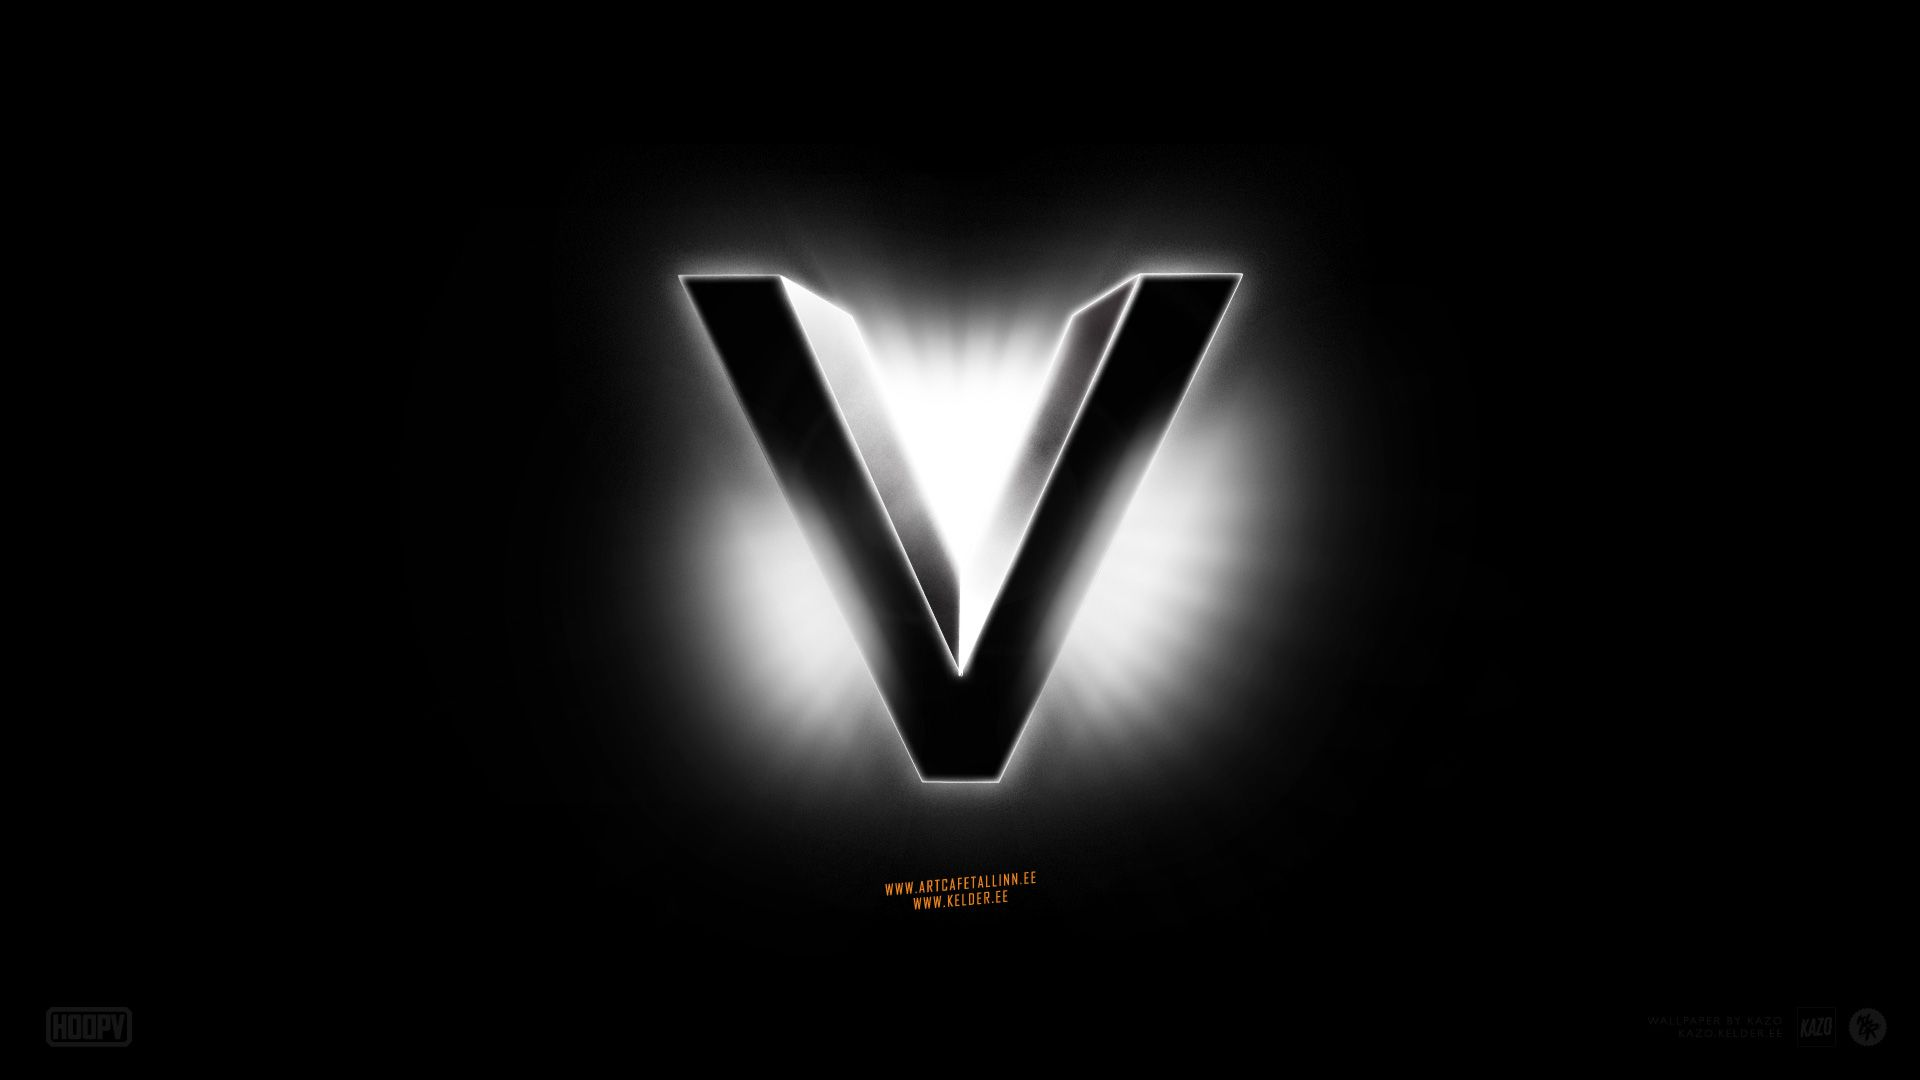 You Can Download V Alphabet Hd Wallpapers Here V Alphabet Hd